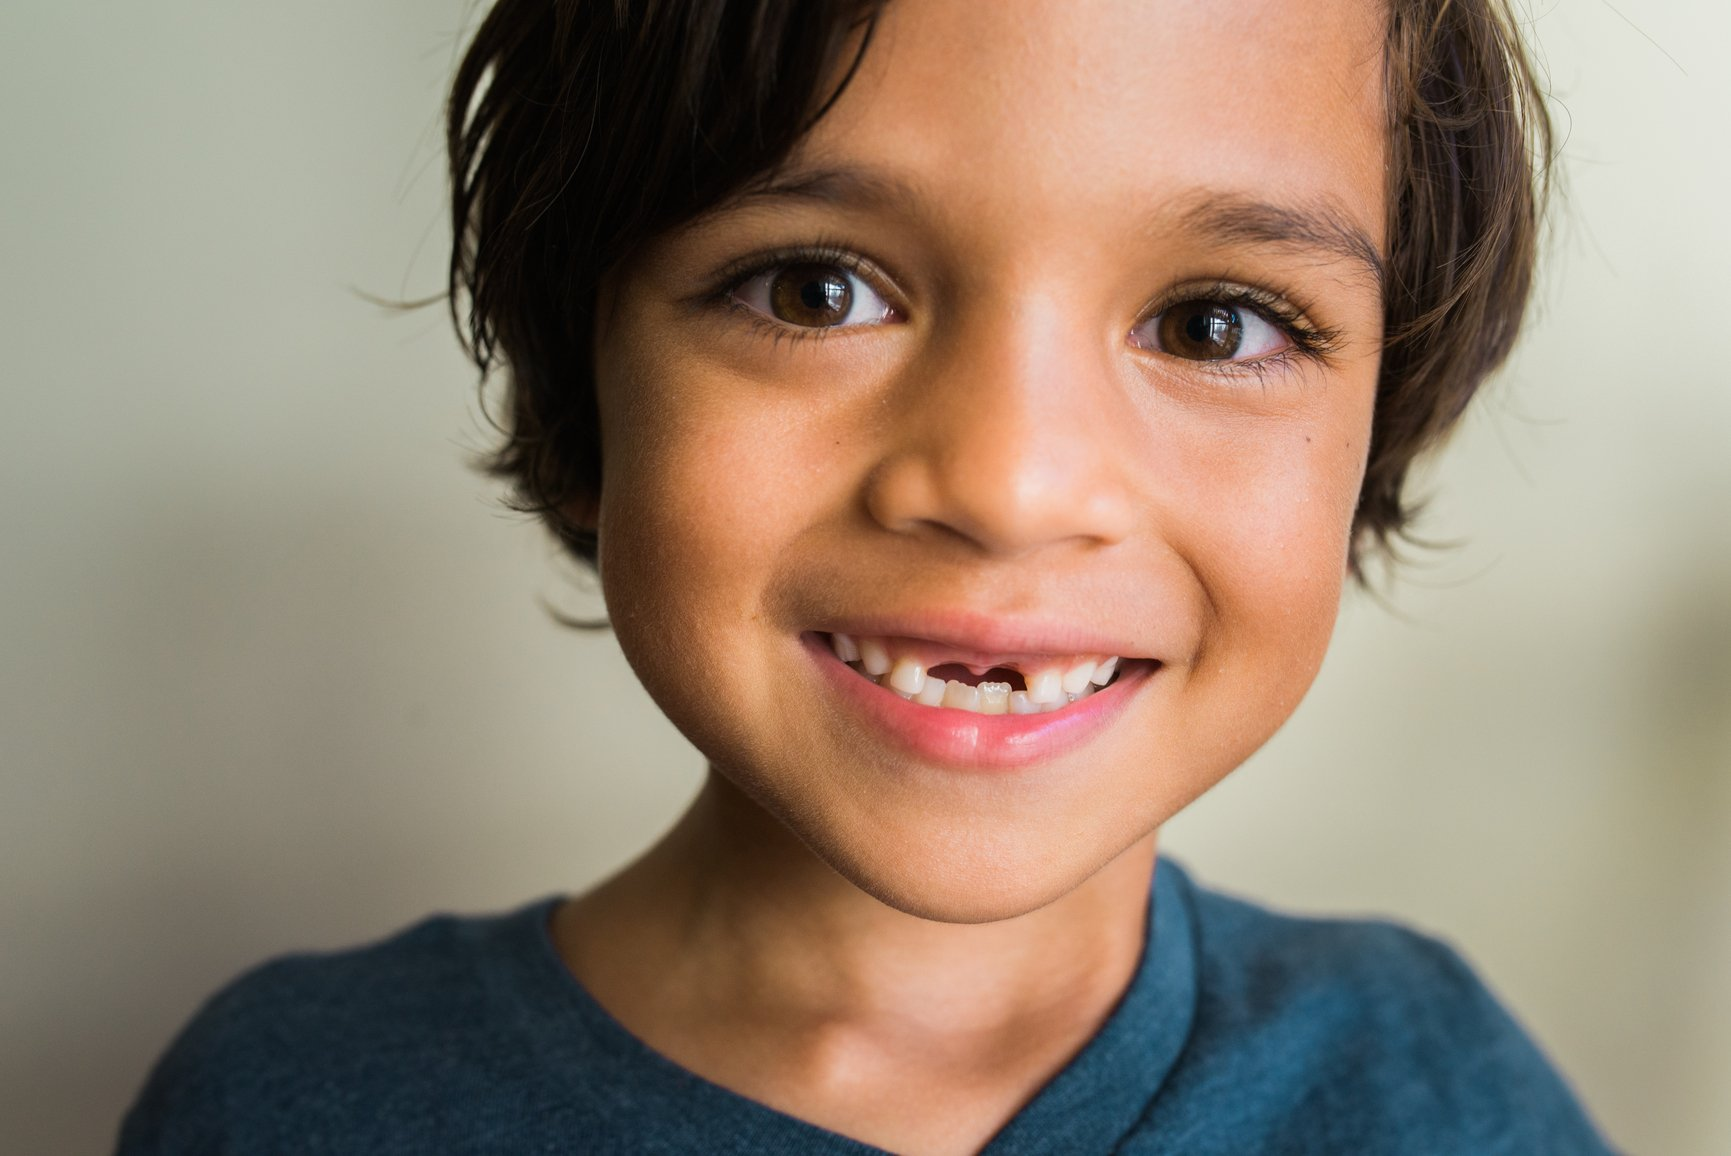 missing tooth child